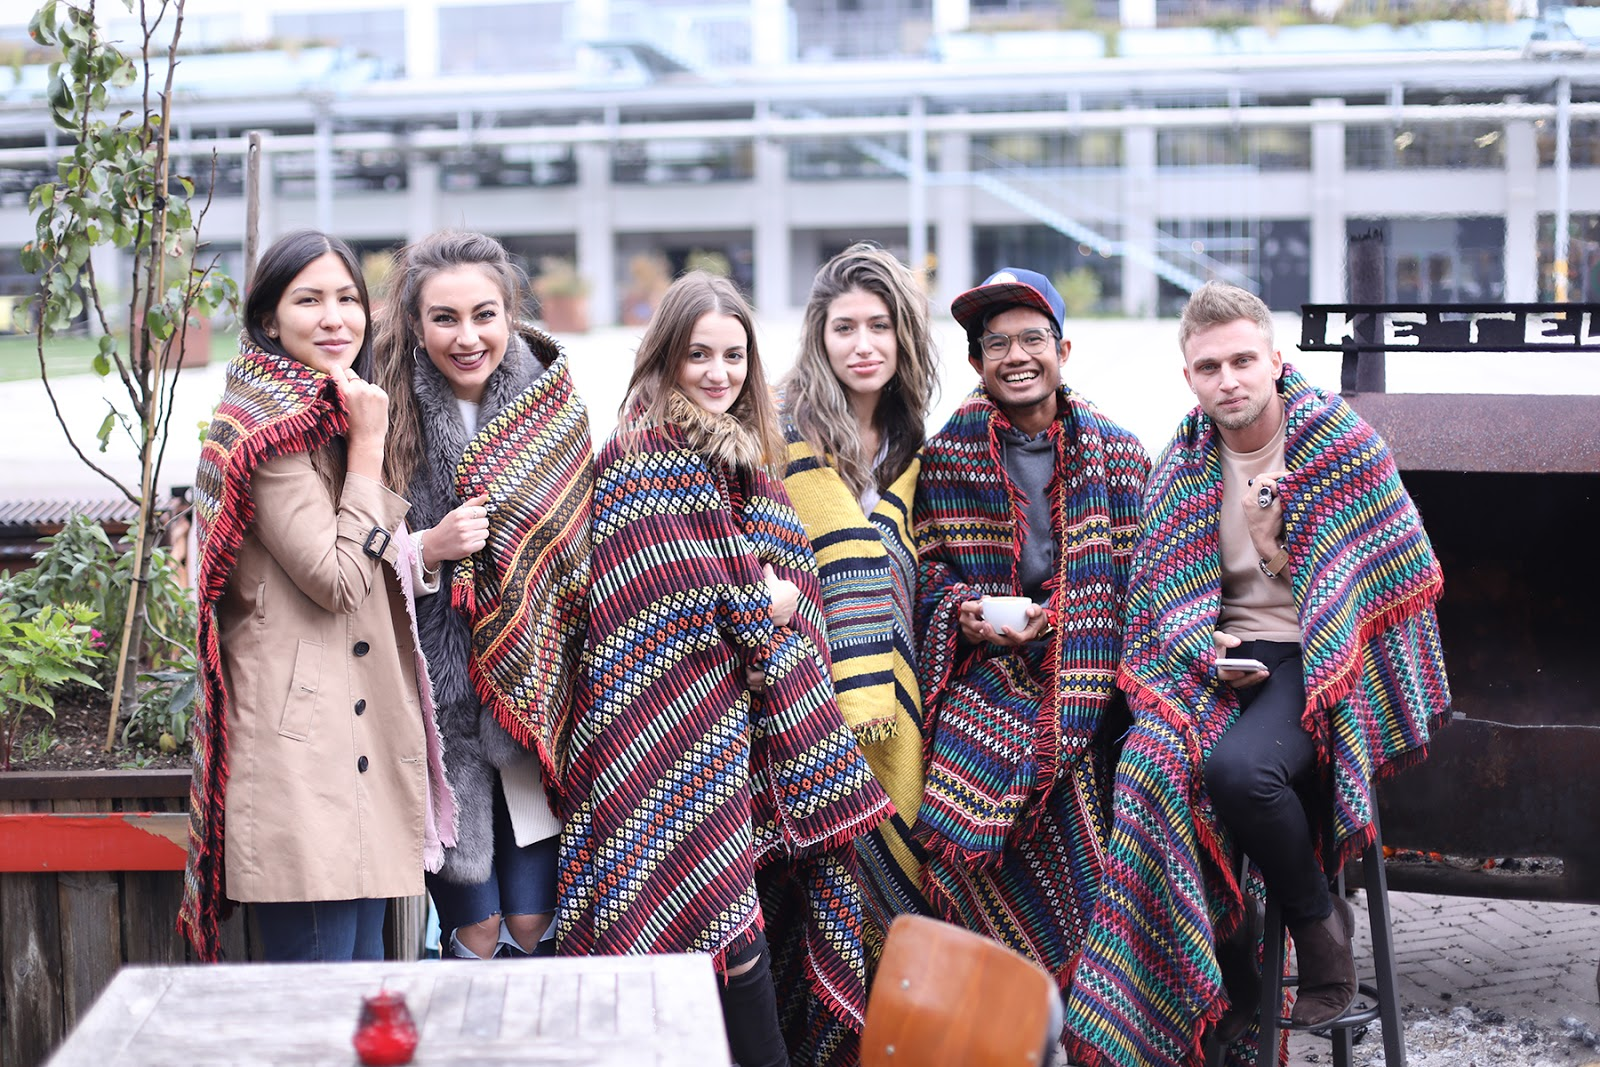 Euriental | luxury travel & style | Eindhoven365 bloggers trip in the Netherlands